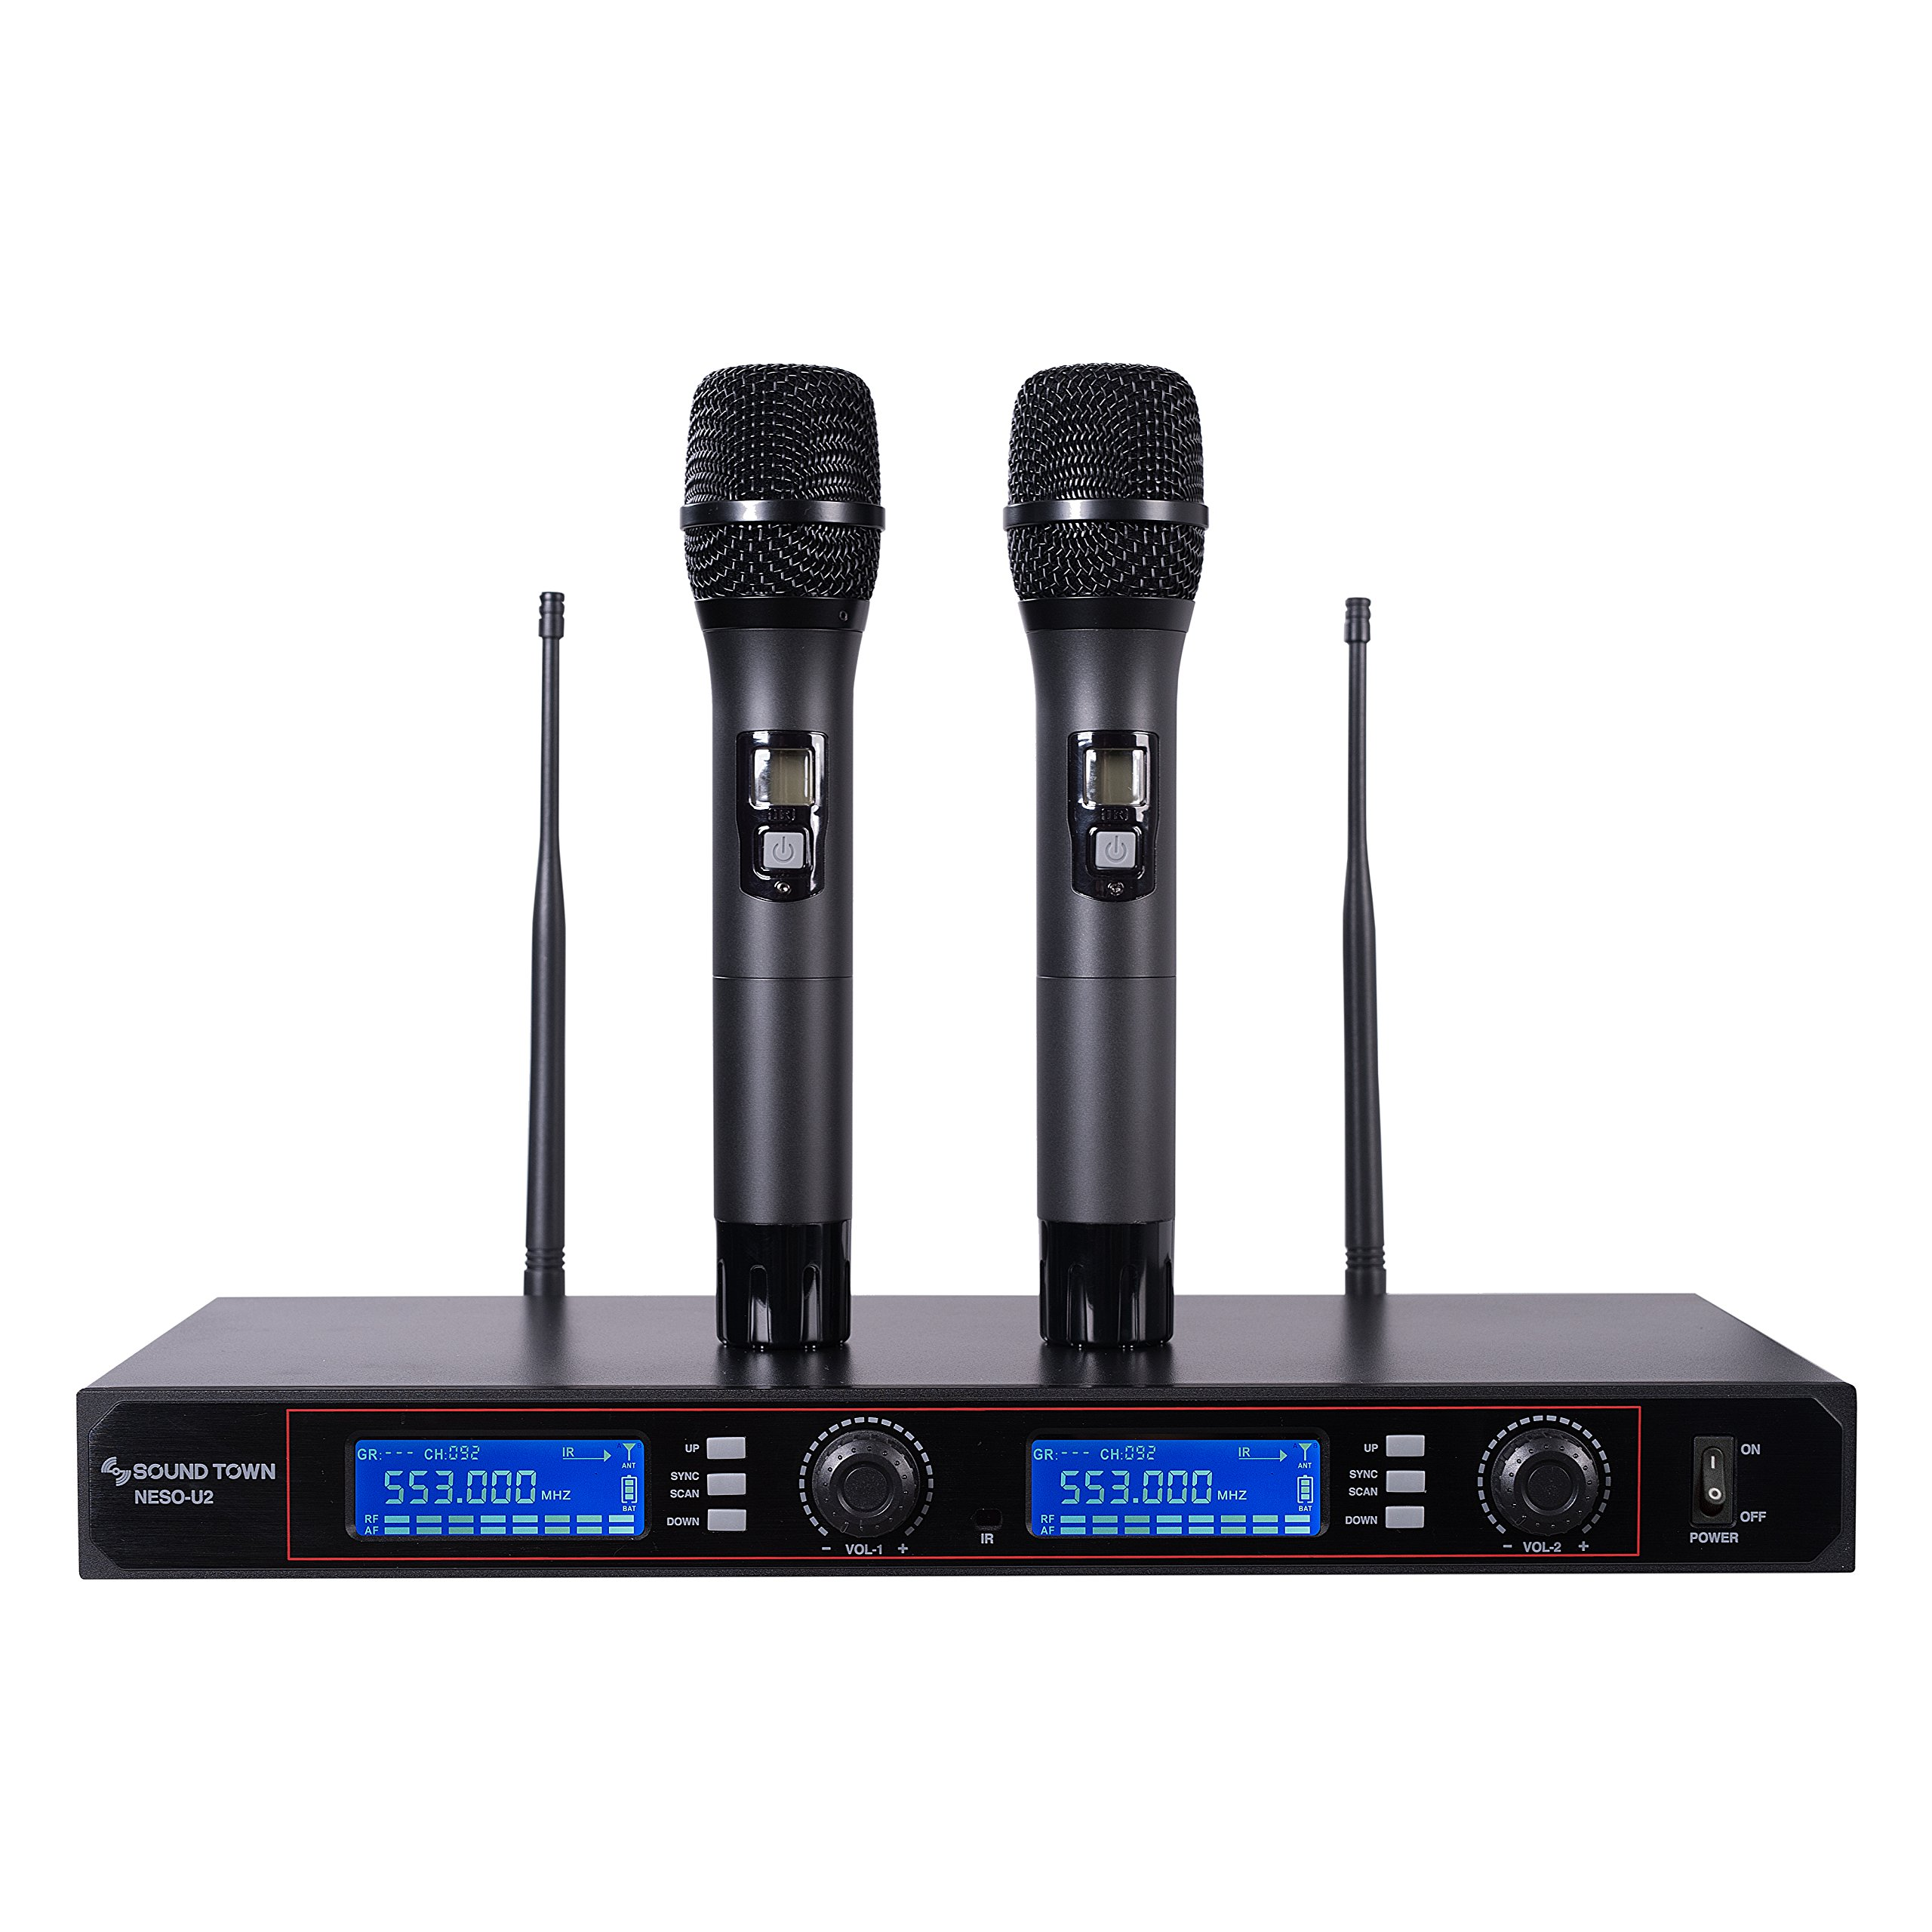 Sound Town Professional UHF Handheld Wireless Microphone System with 200 Selectable Frequencies, LED Display, 2 Handheld Mics (NESO-U2HH)